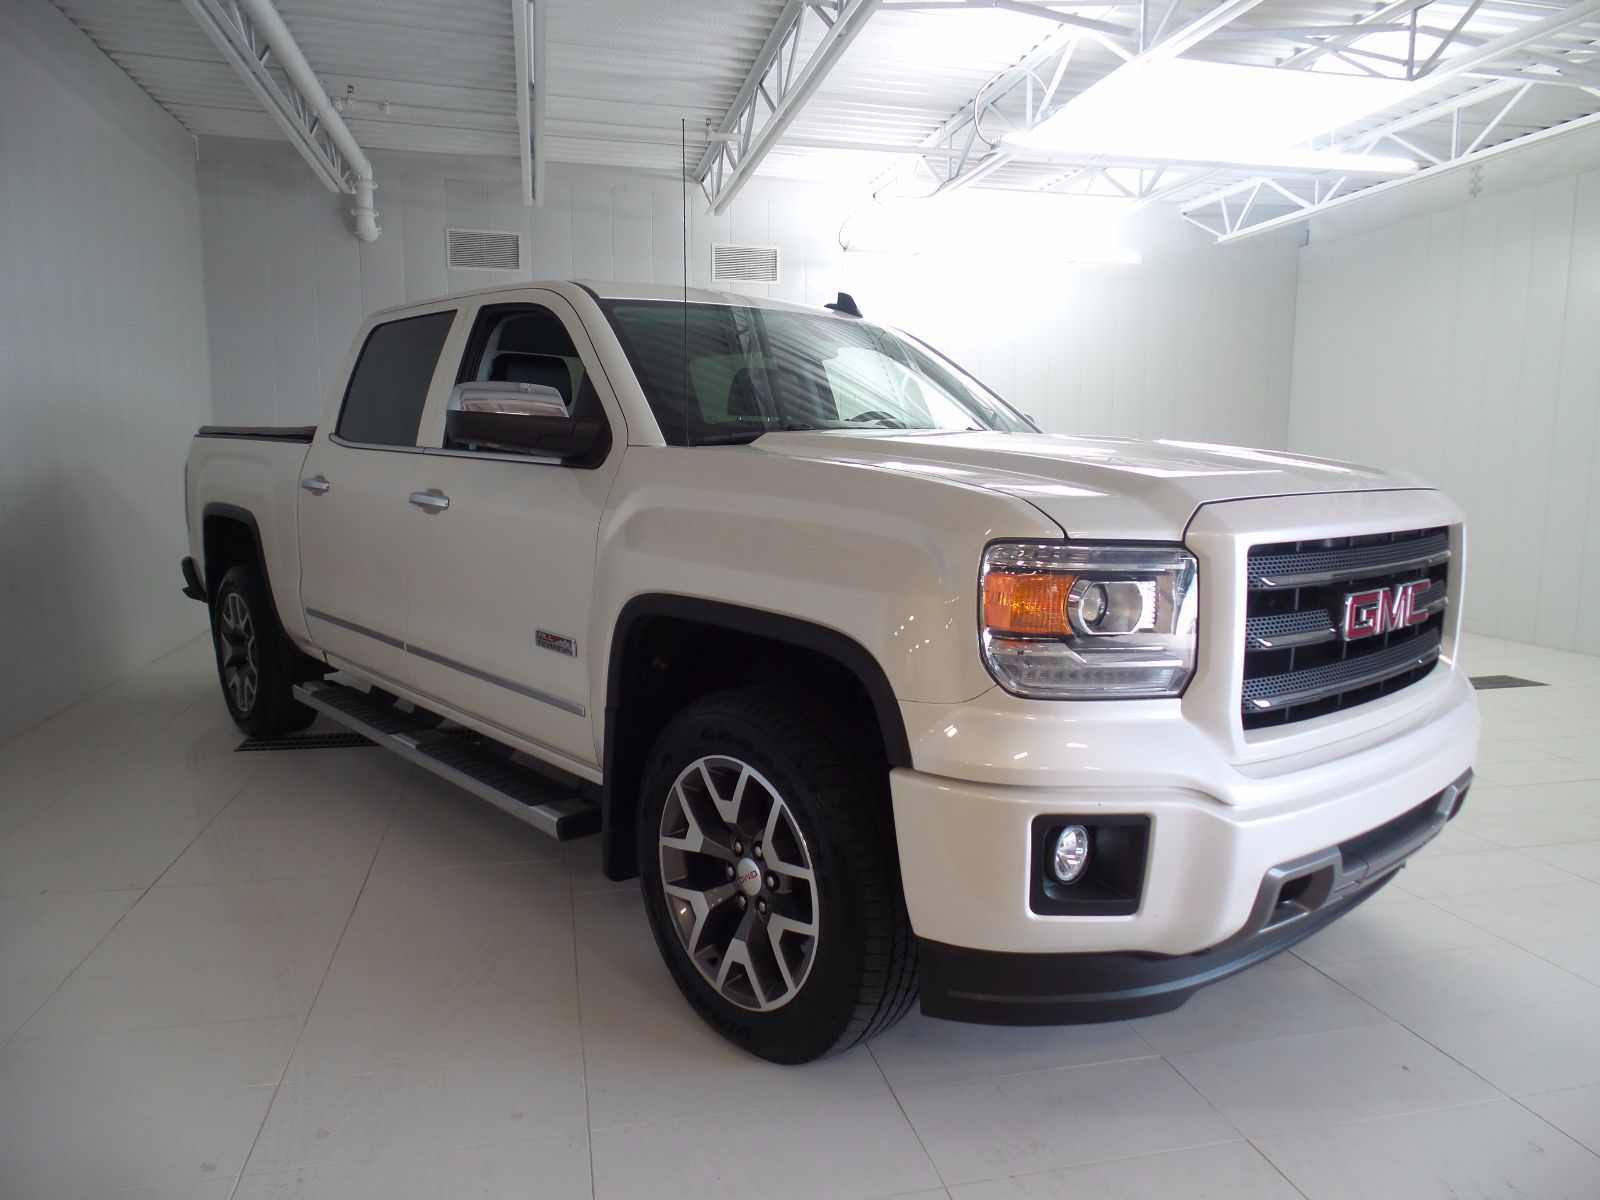 gmc front closer identical also almost aforementioned to view edition news truck exclusively it for carbon cab the clip sierra s double offers trucks sle trim adds package